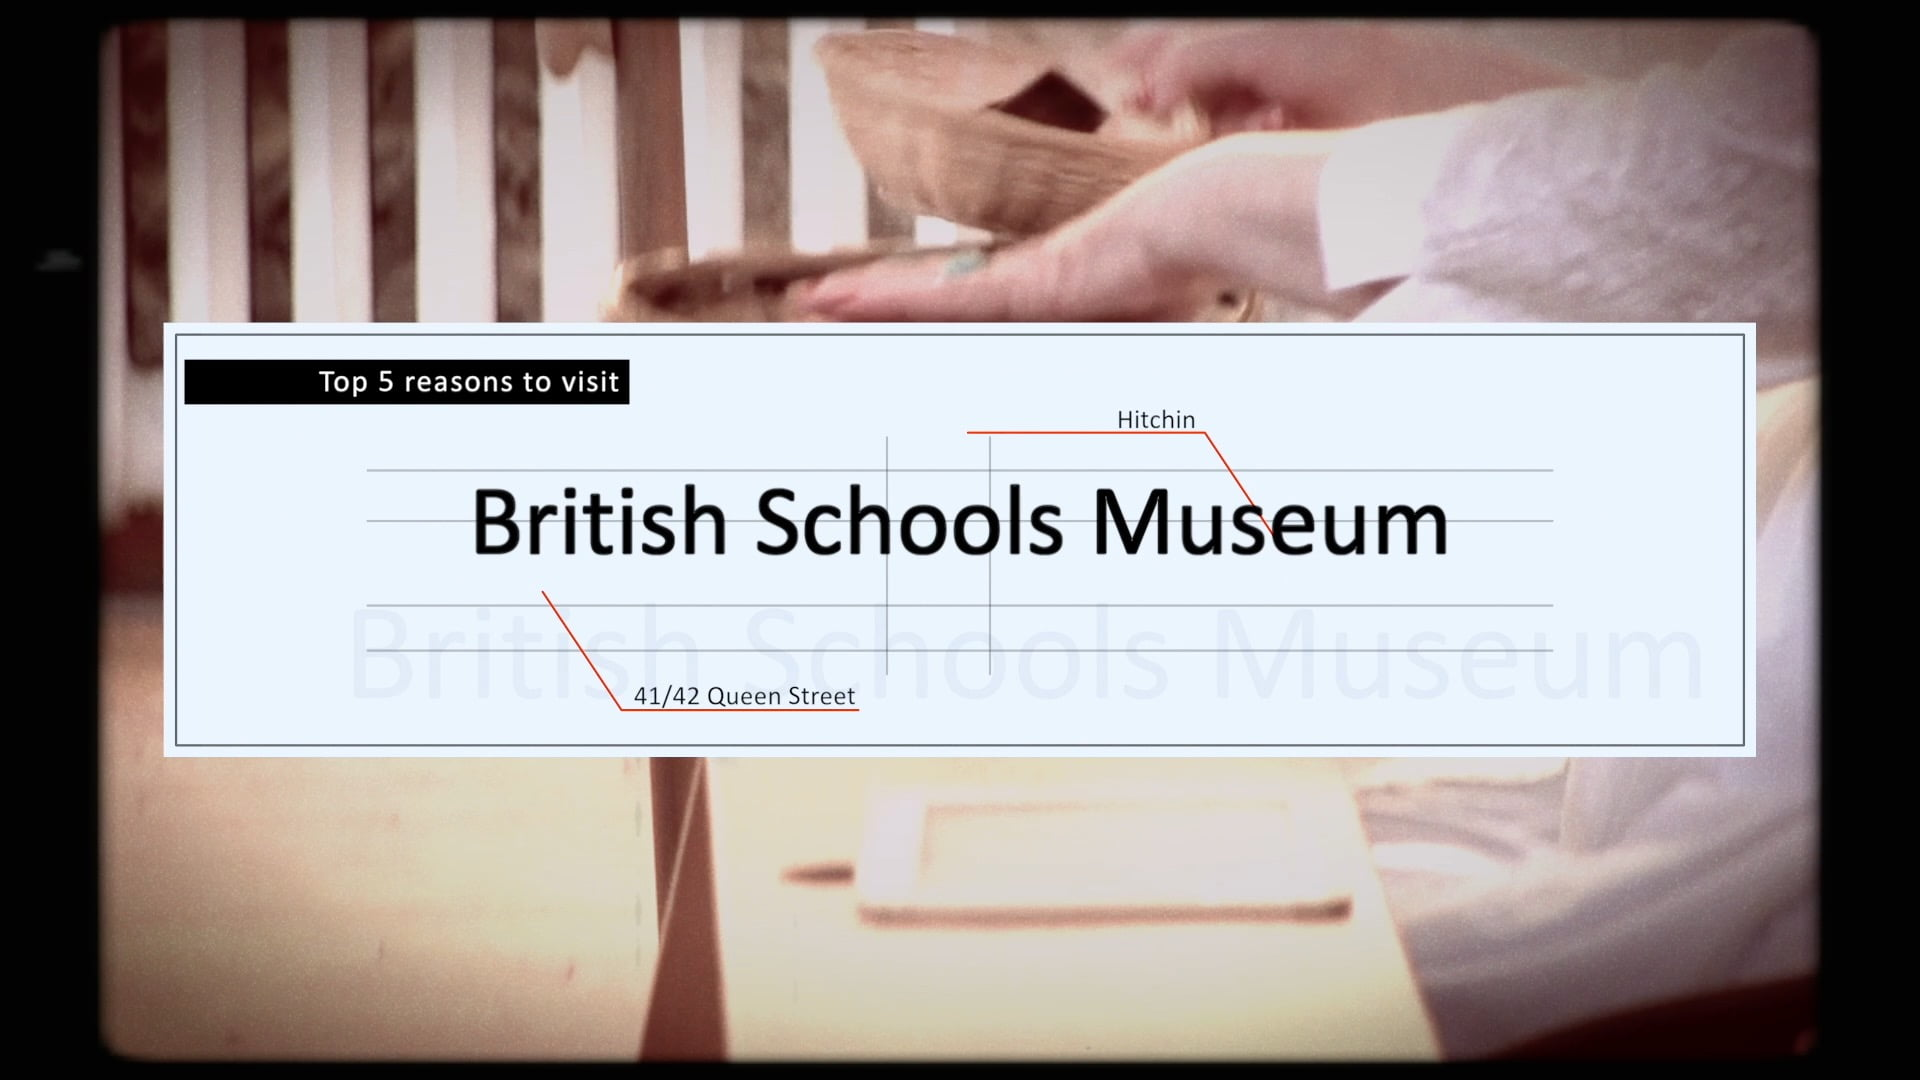 Top 5 reasons to visit Hitchin British Schools Museum